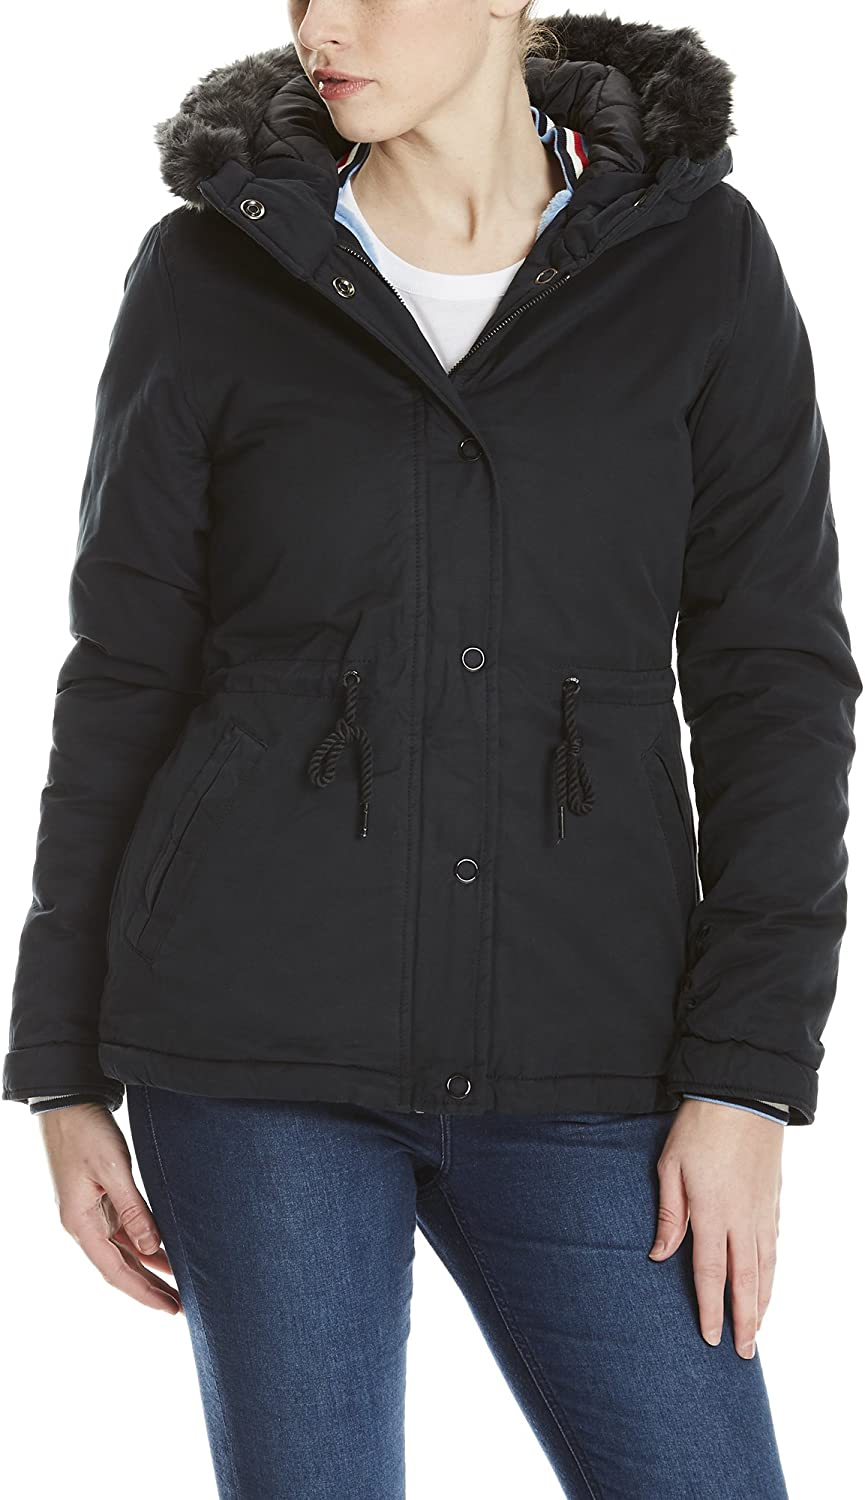 Bench Padded Jacket with Fur Lining Chaqueta para Mujer